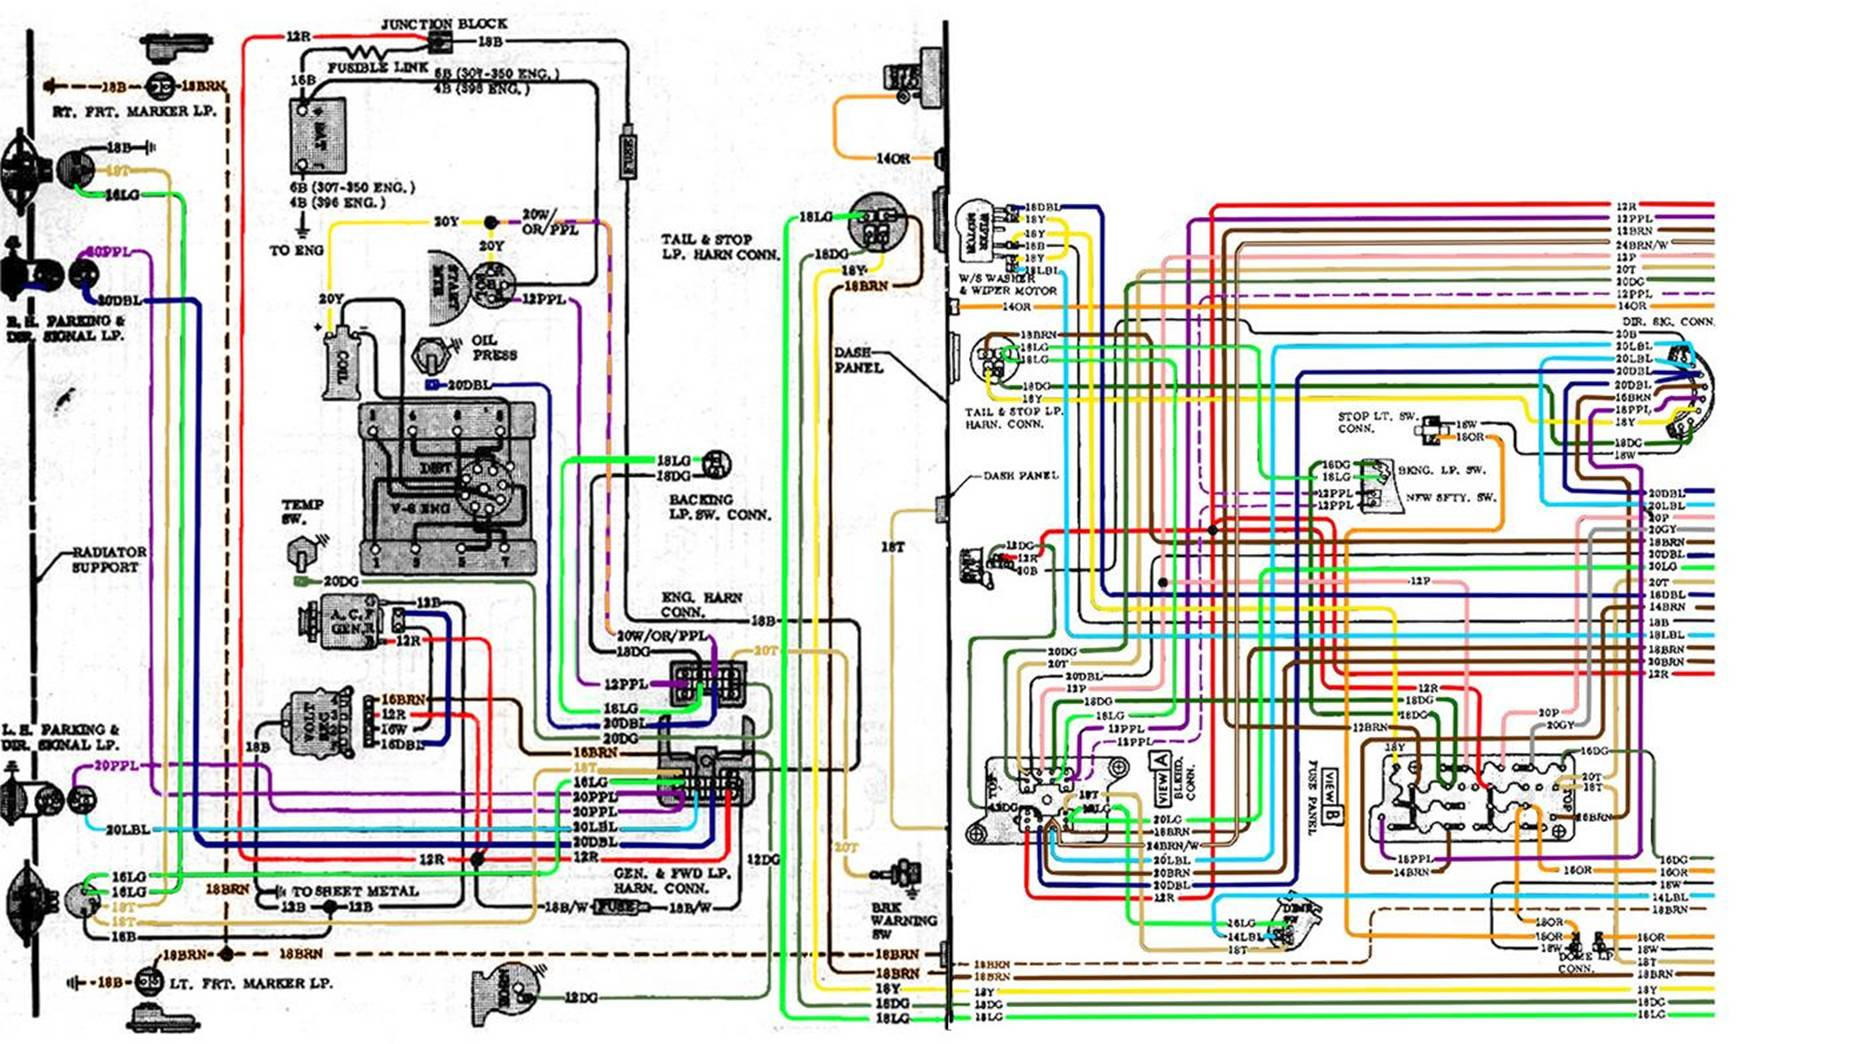 hight resolution of wrg 3991 2003 blazer fuse panel diagram1967 chevy c10 fuse box data schematics wiring diagram